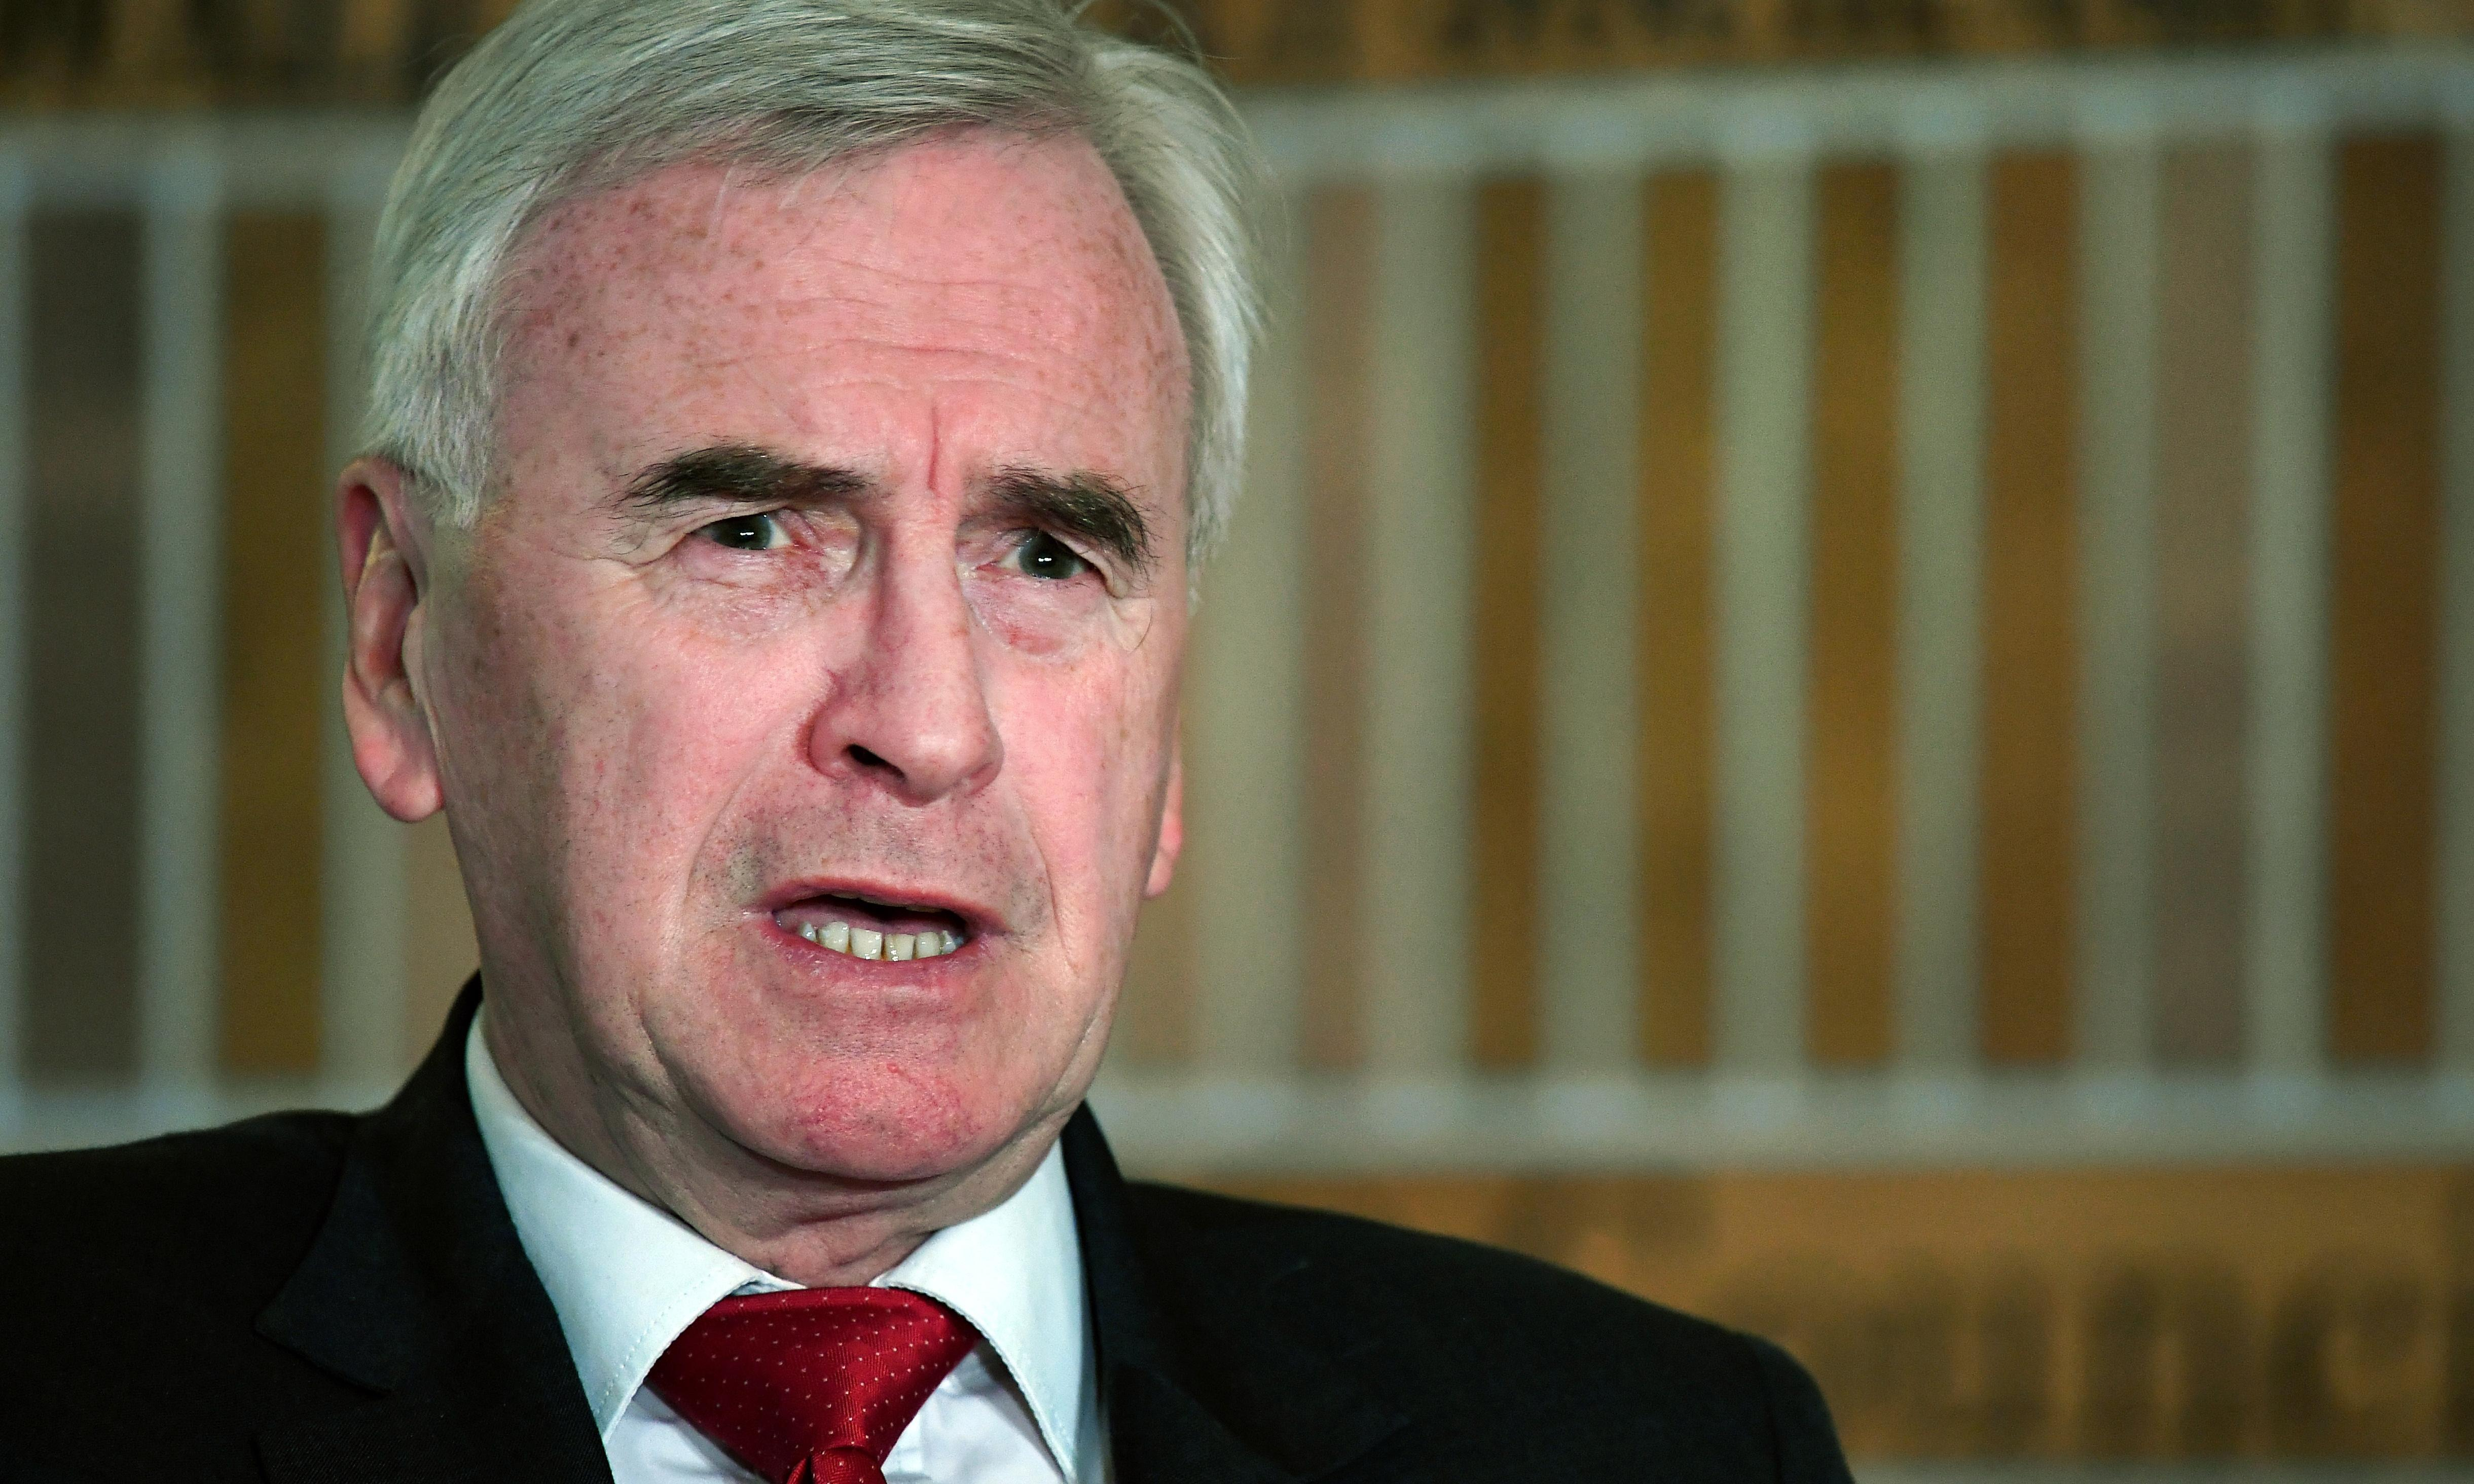 Labour will call for no-confidence motion in next Tory PM, McDonnell says